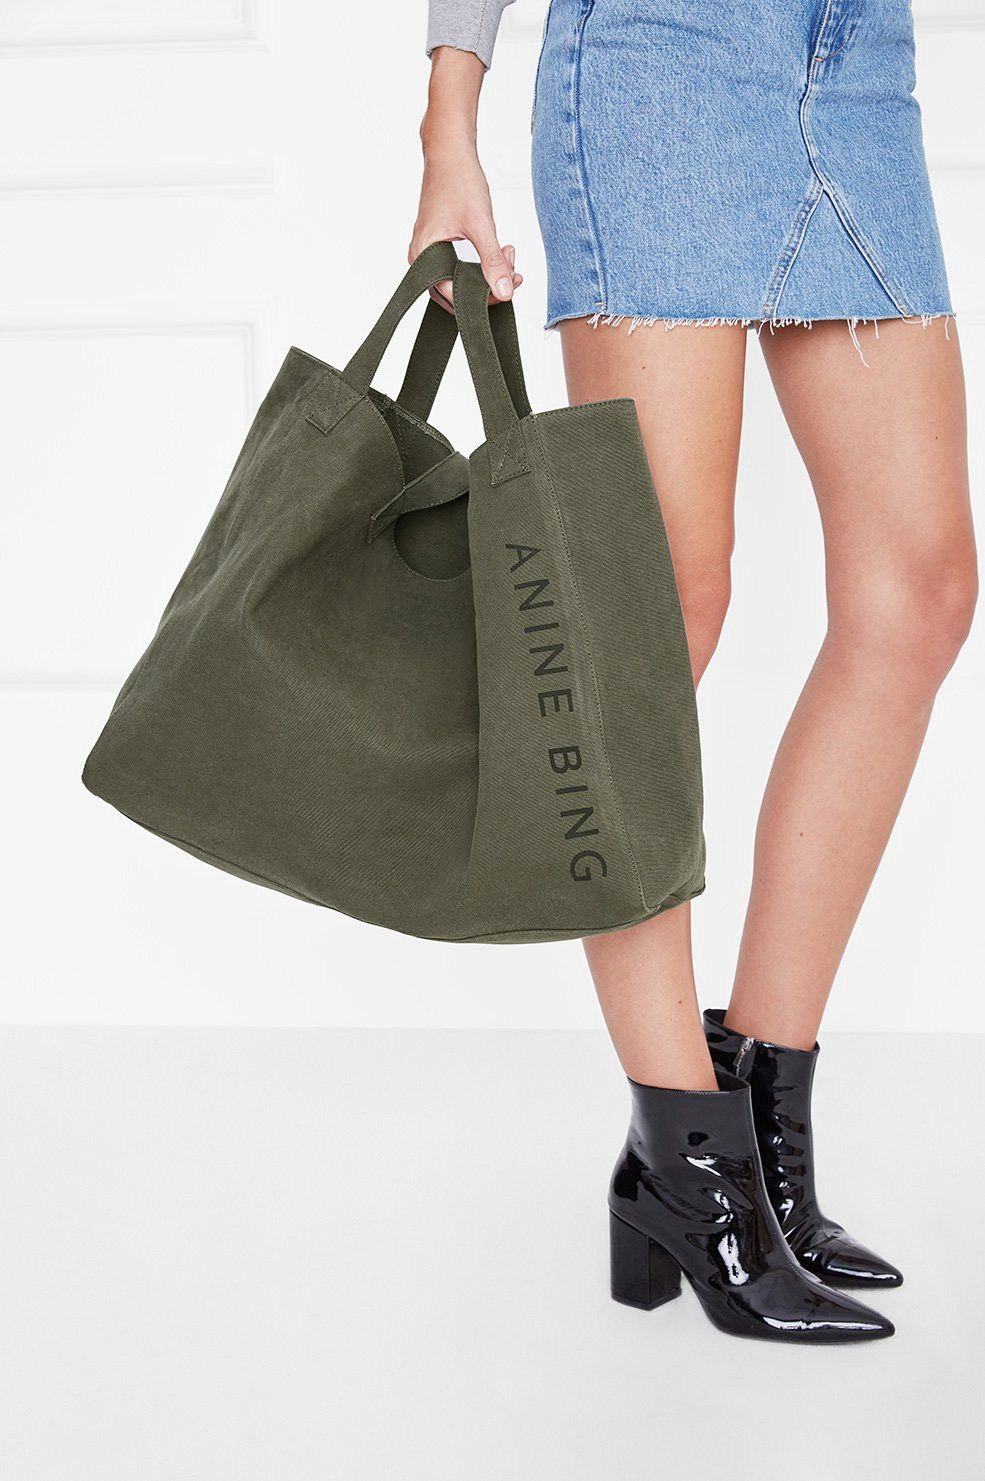 d3b8933f57ff8 ANINE BING CAMILLE TOTE - MILITARY CANVAS.  aninebing  bags  leather  hand  bags  canvas  tote  cotton